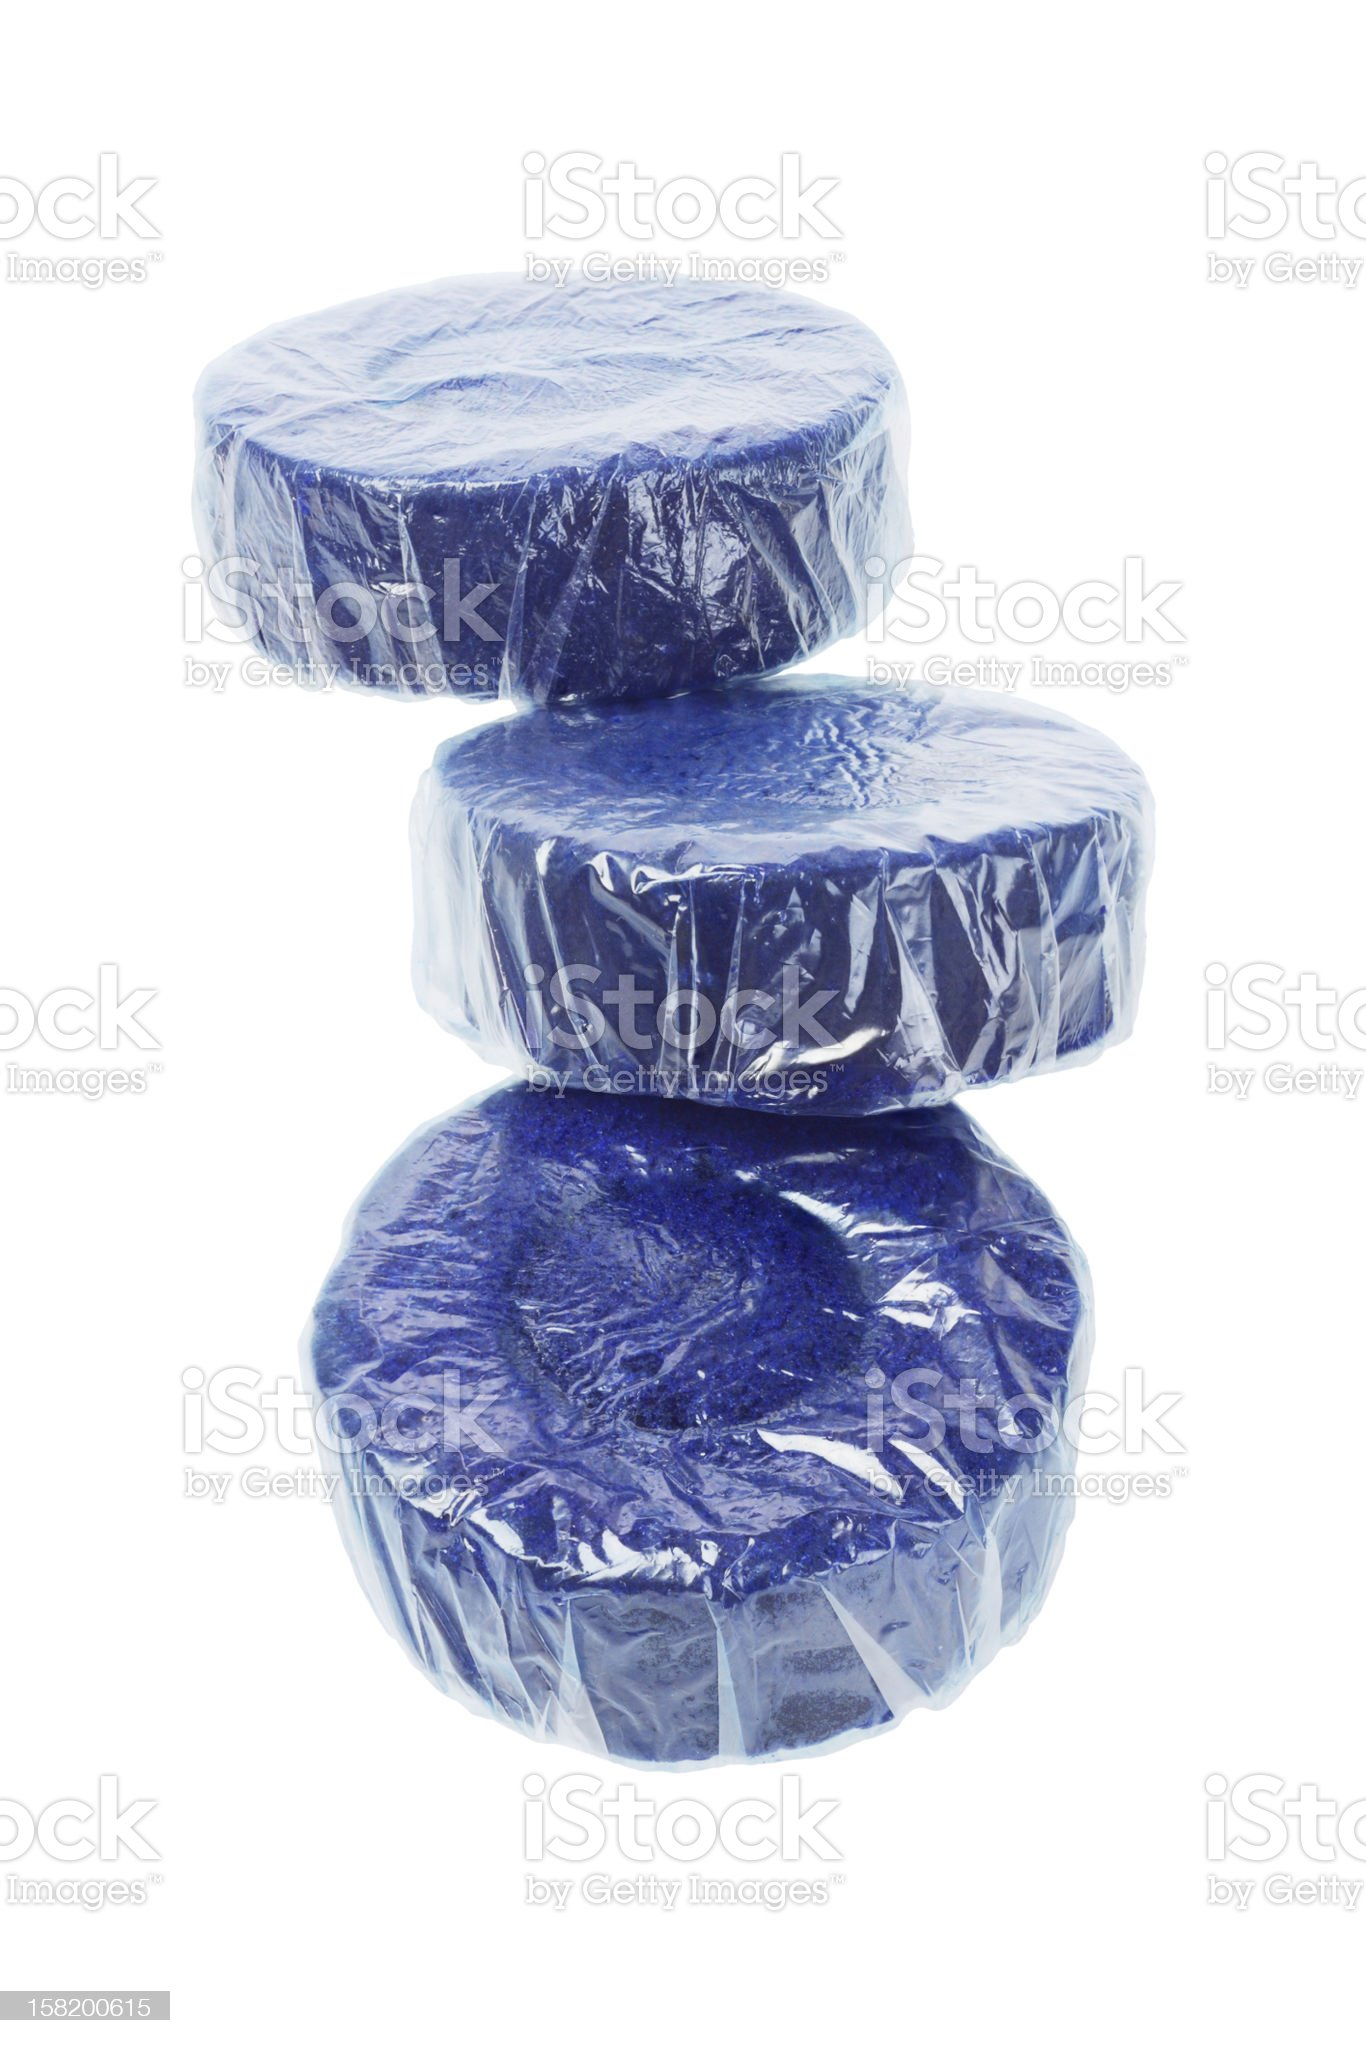 Blue Toilet Cleaner Tablets royalty-free stock photo